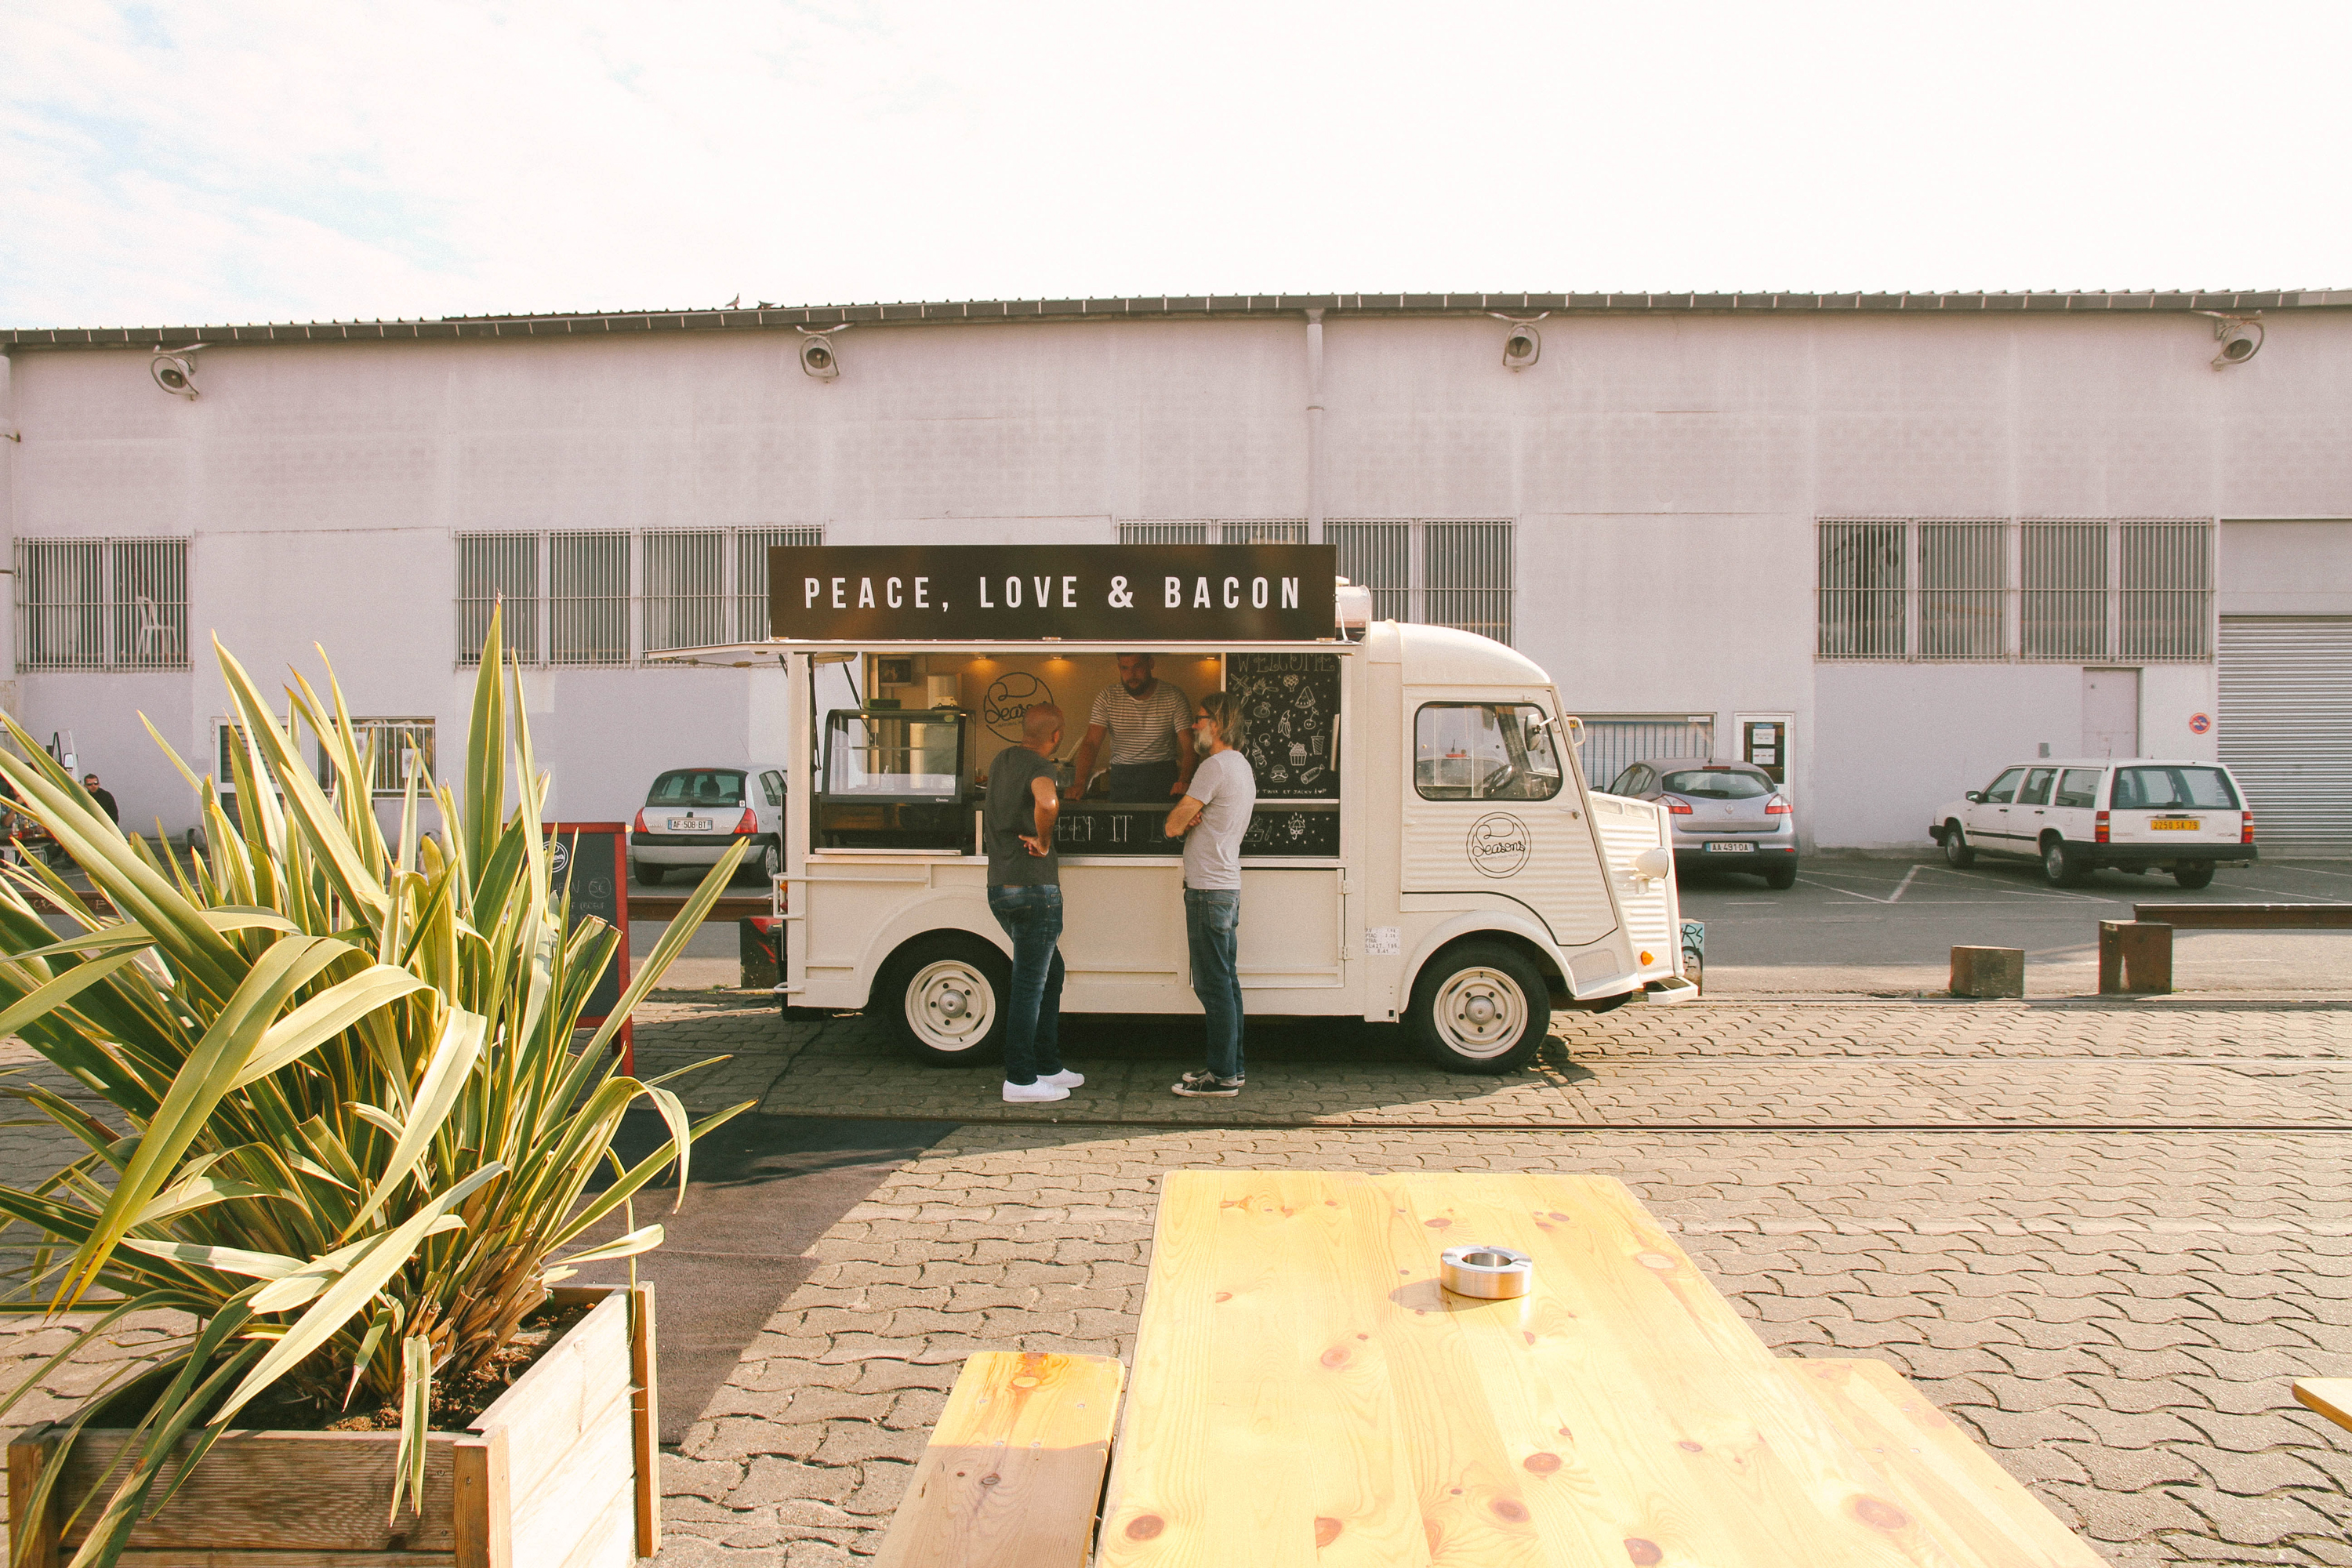 seasonsfoodtruck-seasons-food-truck-food truck-bordeaux-bordeauxmaville-visit bordeaux-event-lababineau-iboat- food photographer-events photographer-5